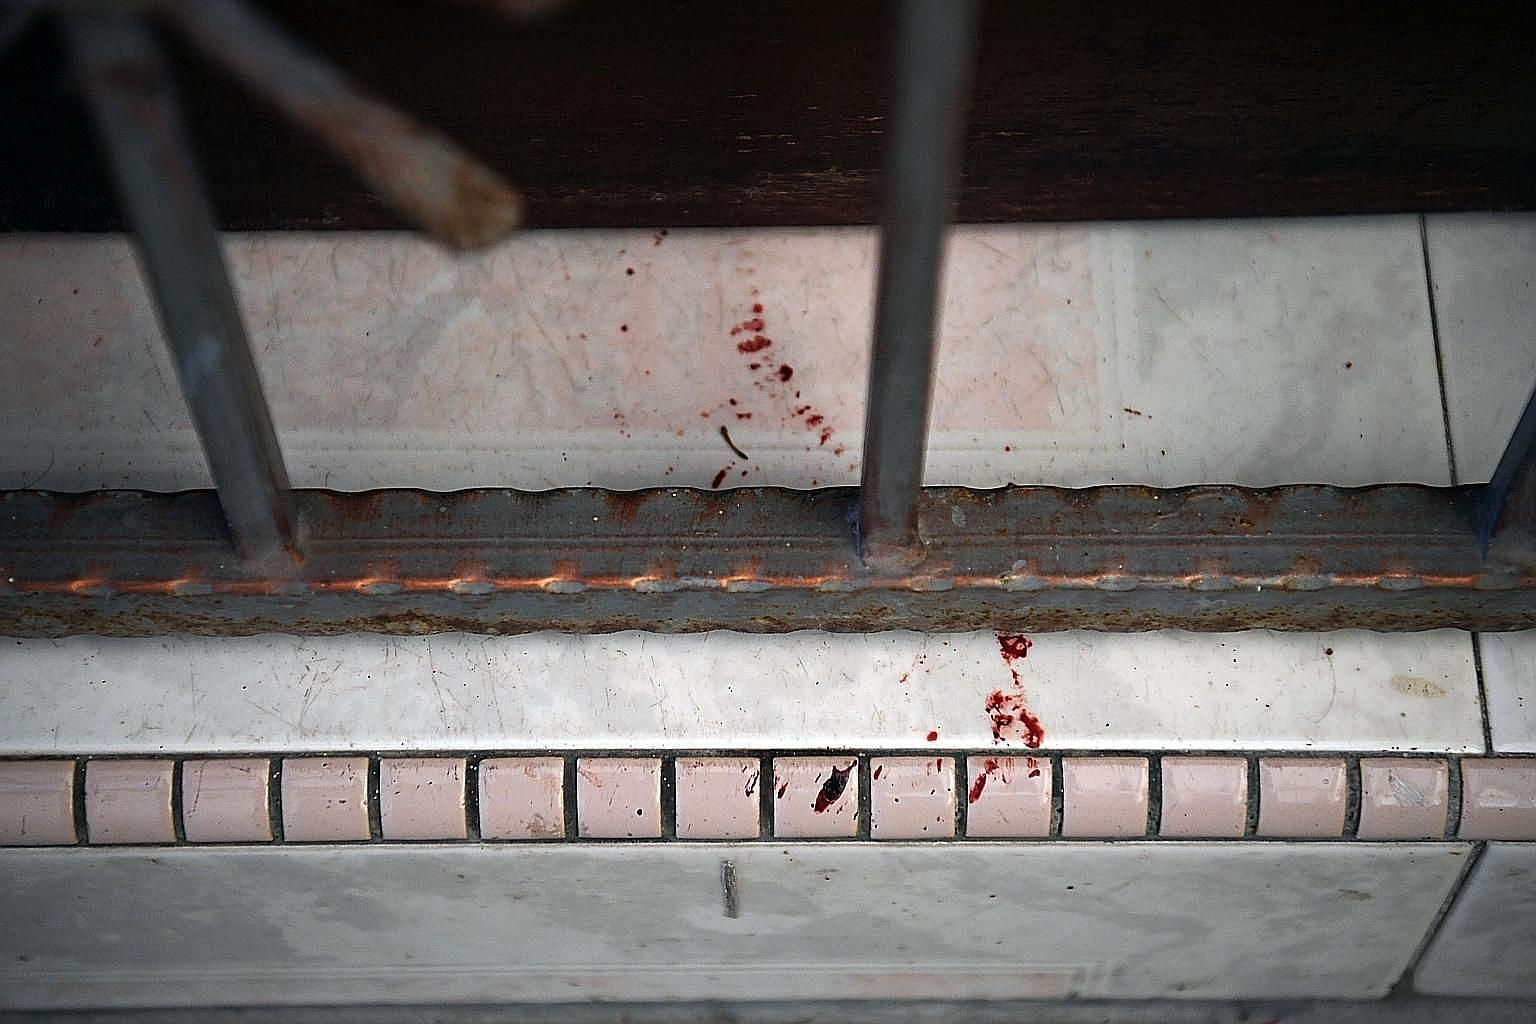 Blood stains on the doorstep of the unit in Block 191 Lorong 4 Toa Payoh. ST PHOTO: KUA CHEE SIONG